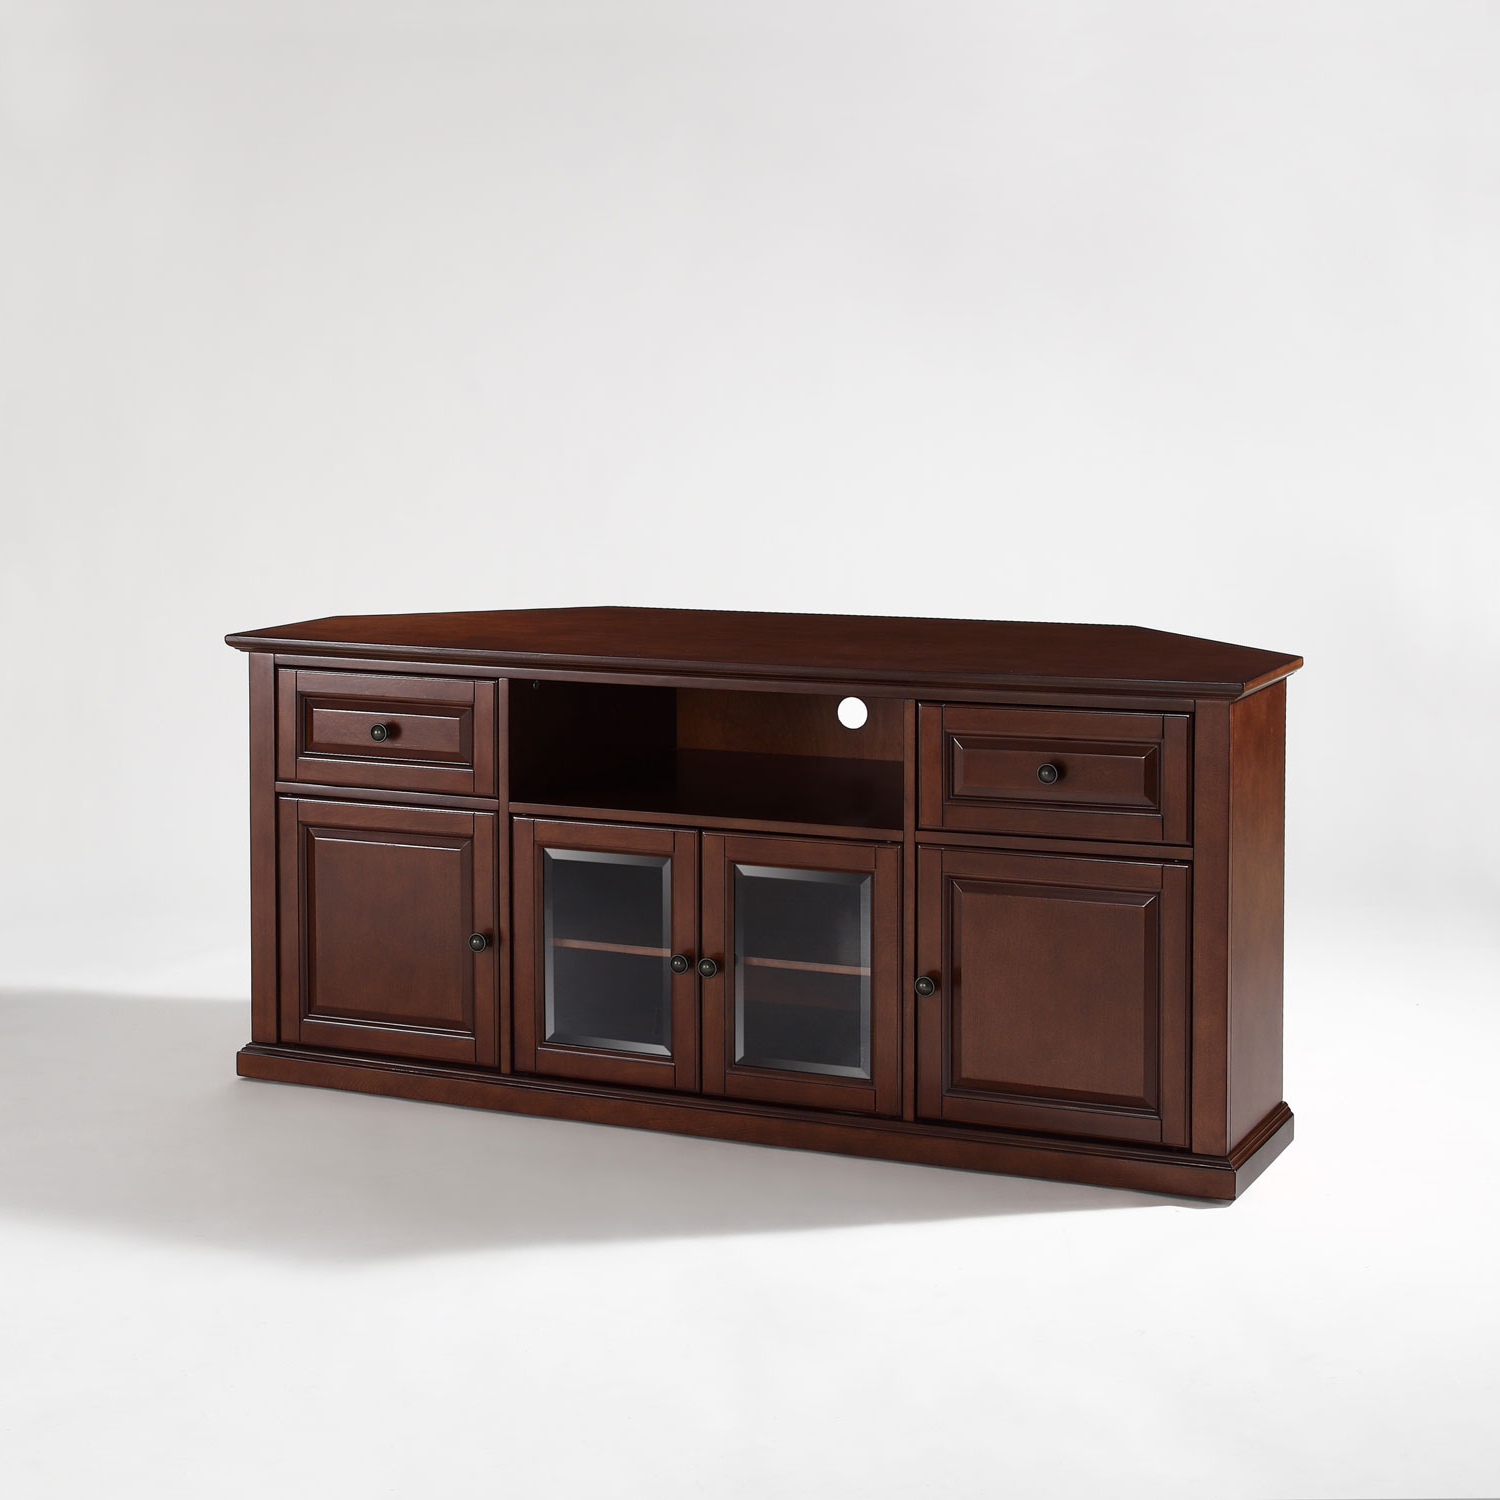 Corner Tv Stands For 55 Inch Tv Throughout Famous Corner Tv Stand In Crosley Furniture Inch Vintage Mahogany Plans (Gallery 13 of 20)